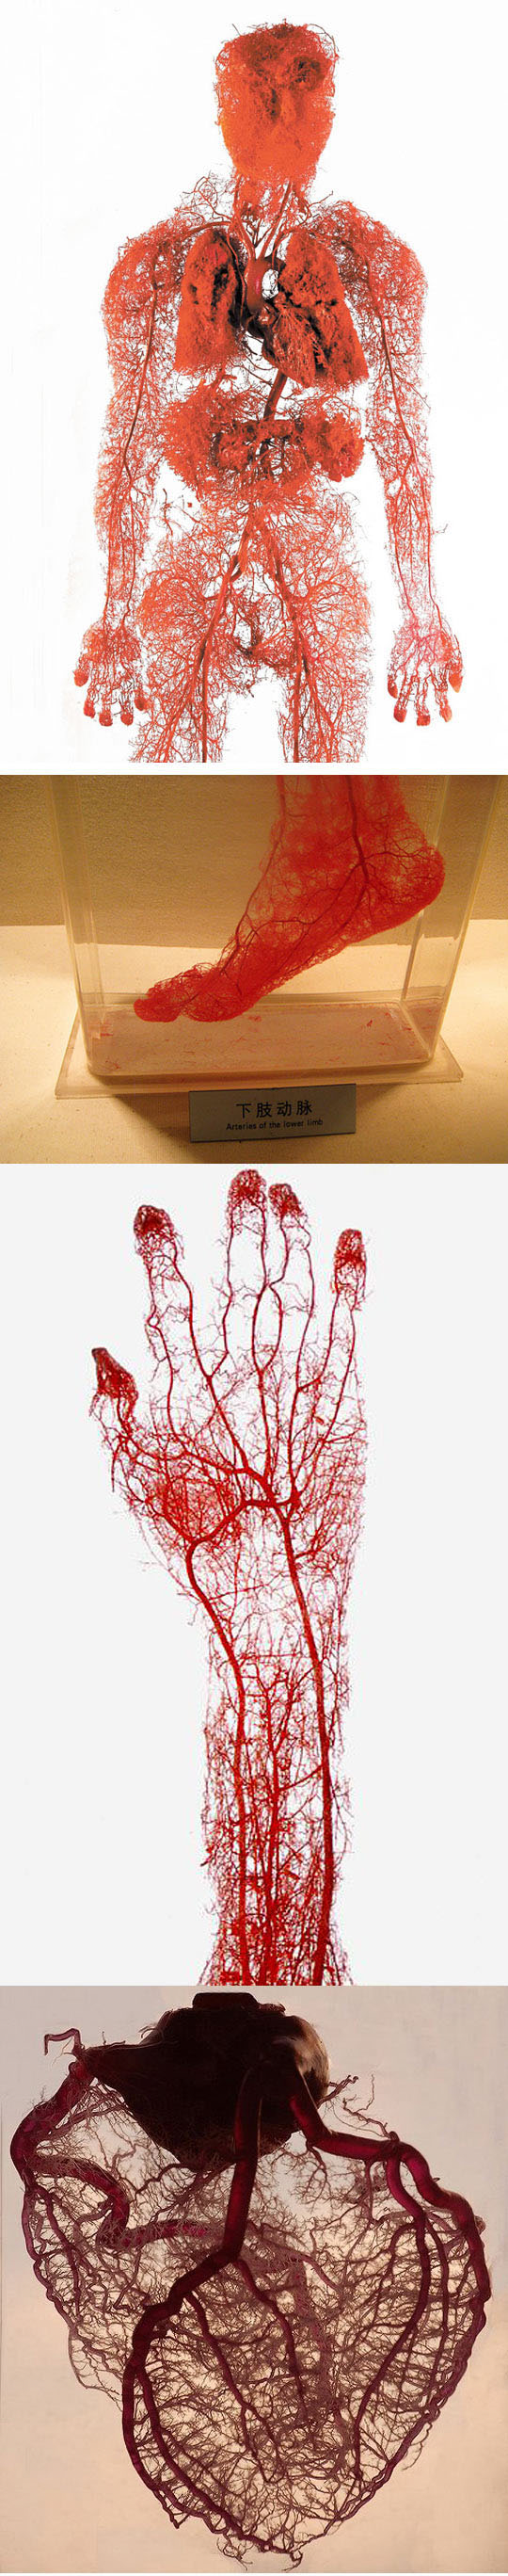 Photos Of Blood Vessels In The Human Body